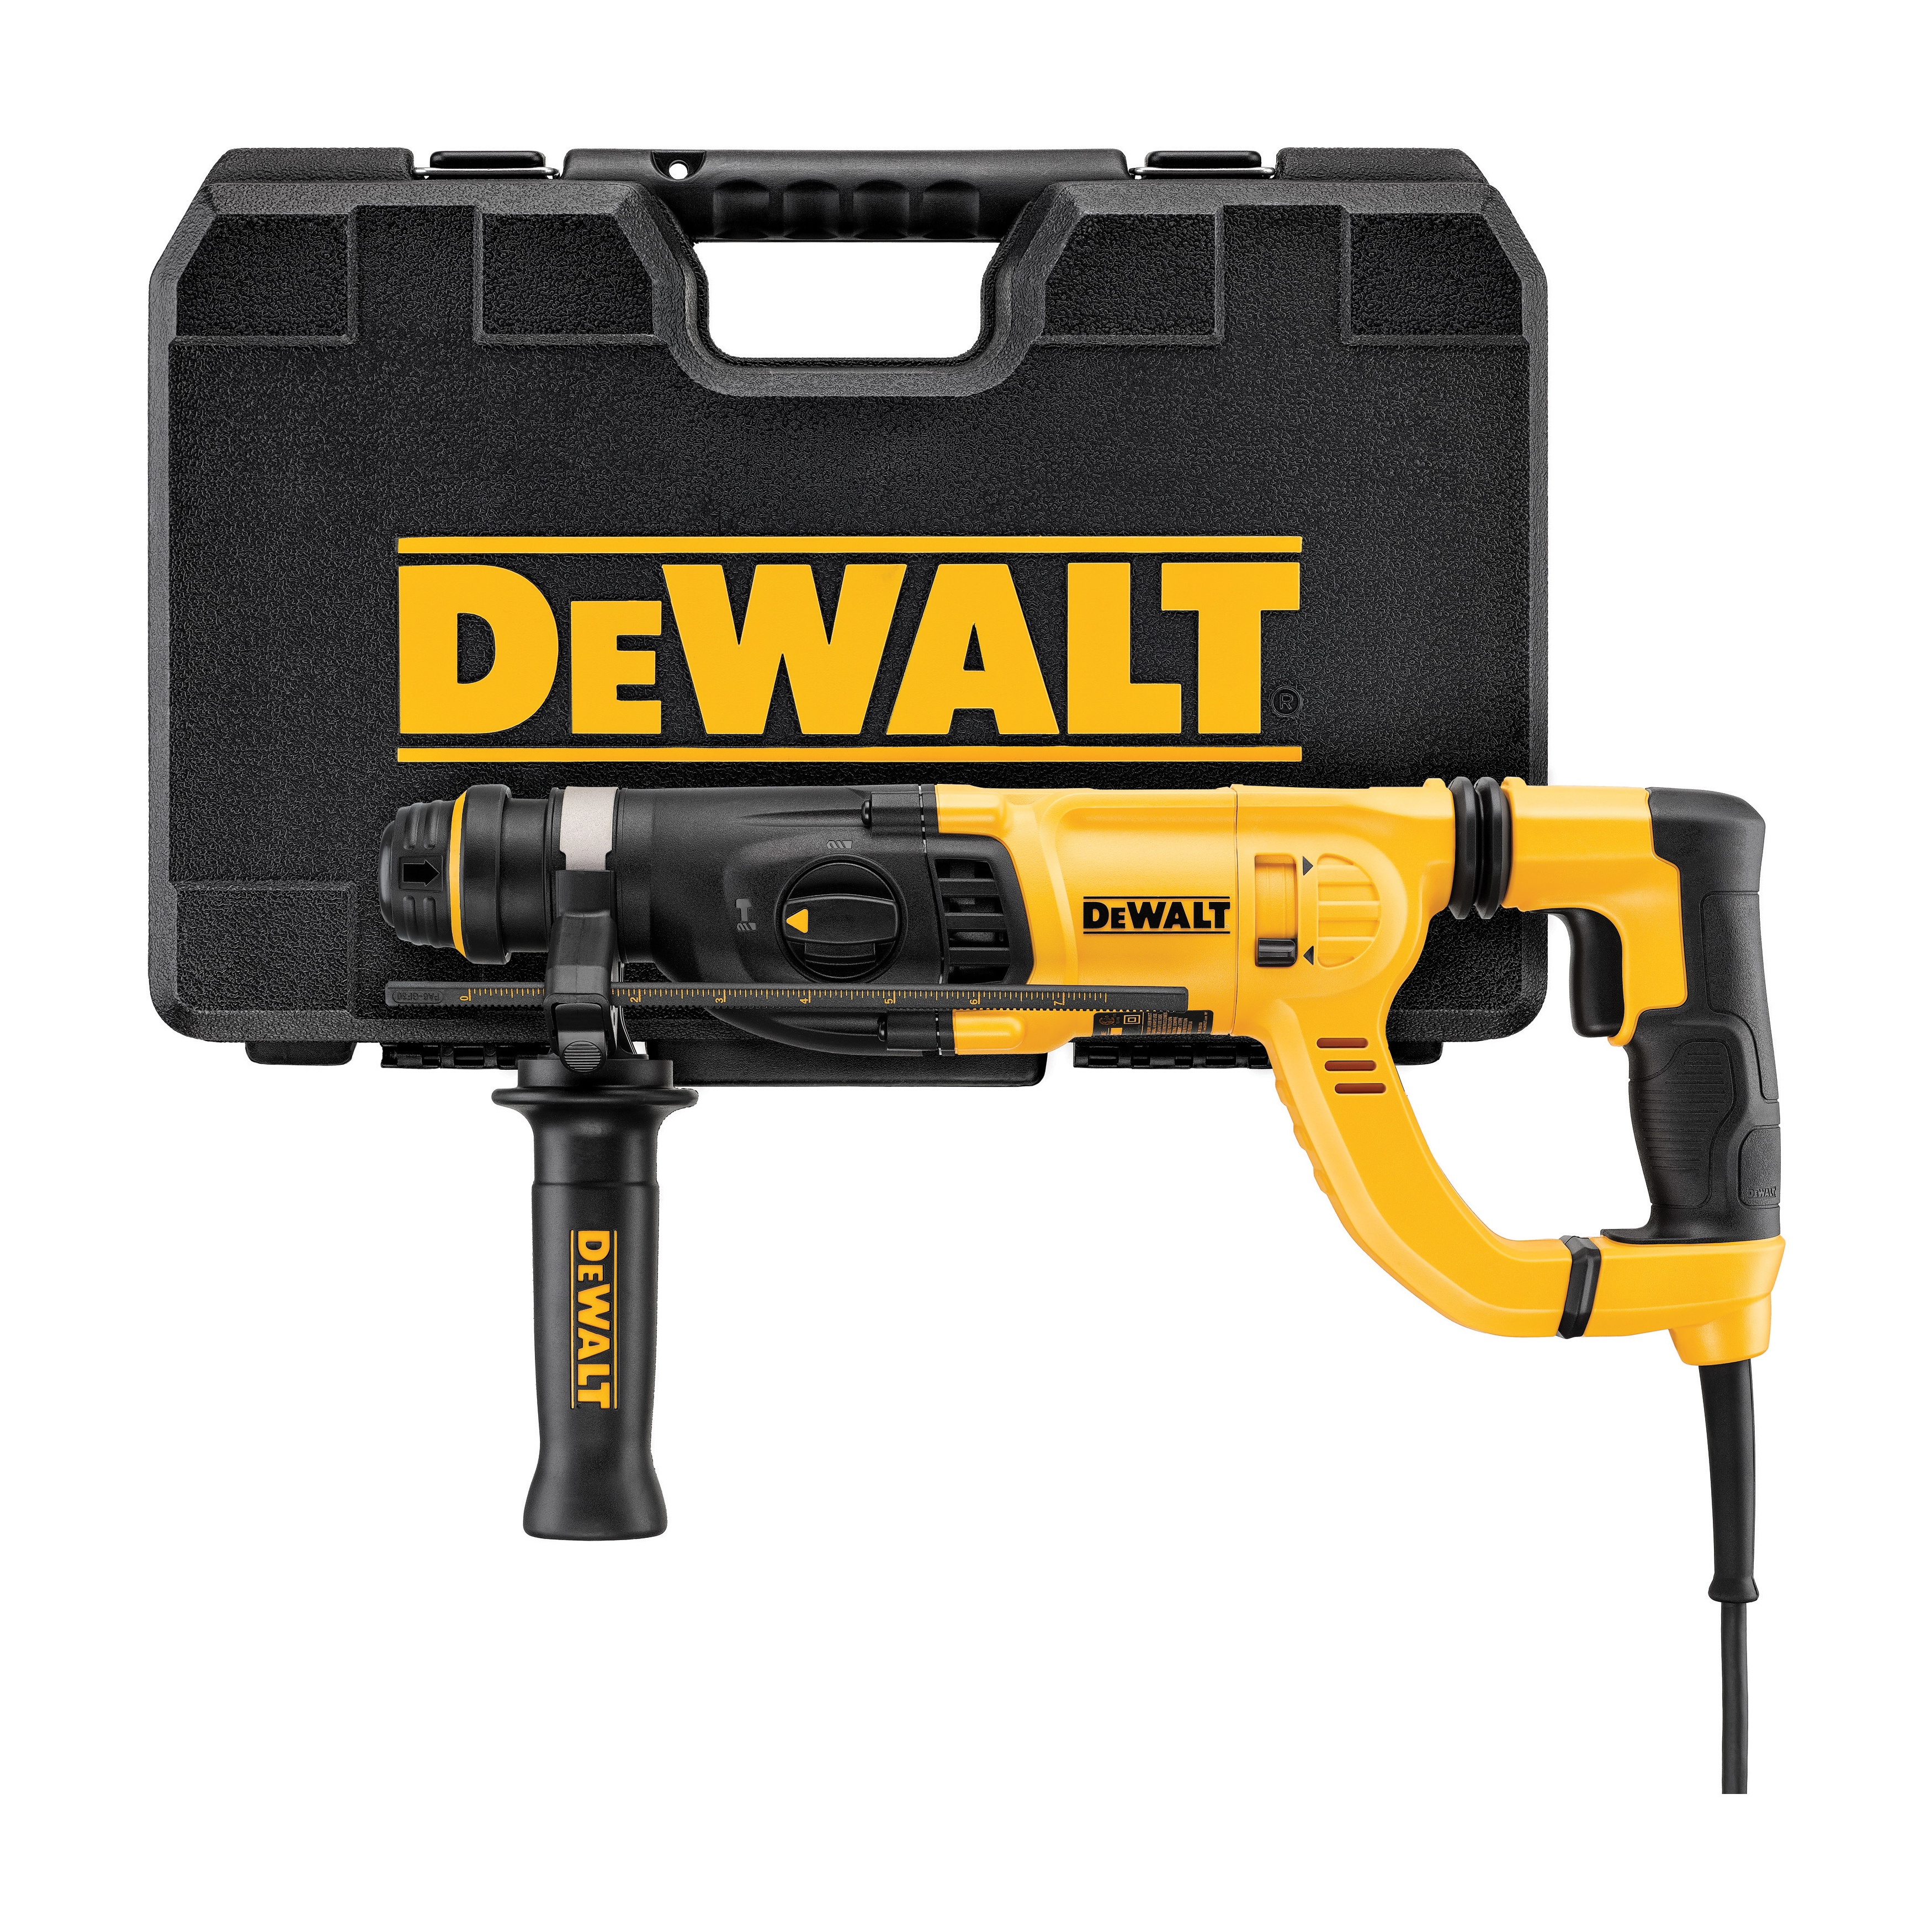 DeWALT® D25262K Corded Rotary Hammer Kit, 1 in SDS Plus® Chuck, 0 to 5540 bpm, 0 to 1500 rpm No-Load, 17-1/4 in OAL